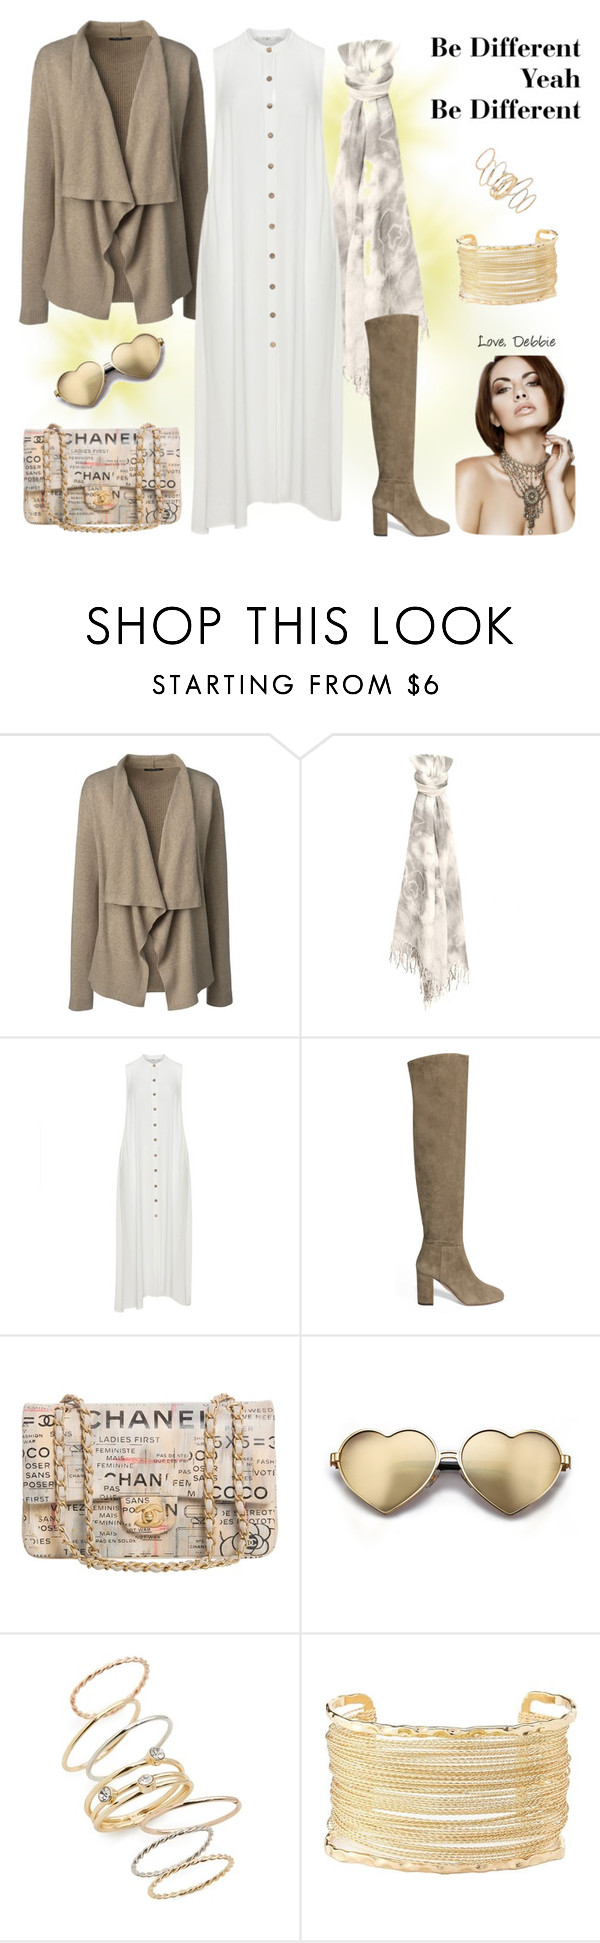 """Be Different Yeah Be Different"" by debbie-michailides ❤ liked on Polyvore featuring Lands' End, Mat, Aquazzura, Chanel, Wildfox, BP. and Charlotte Russe"